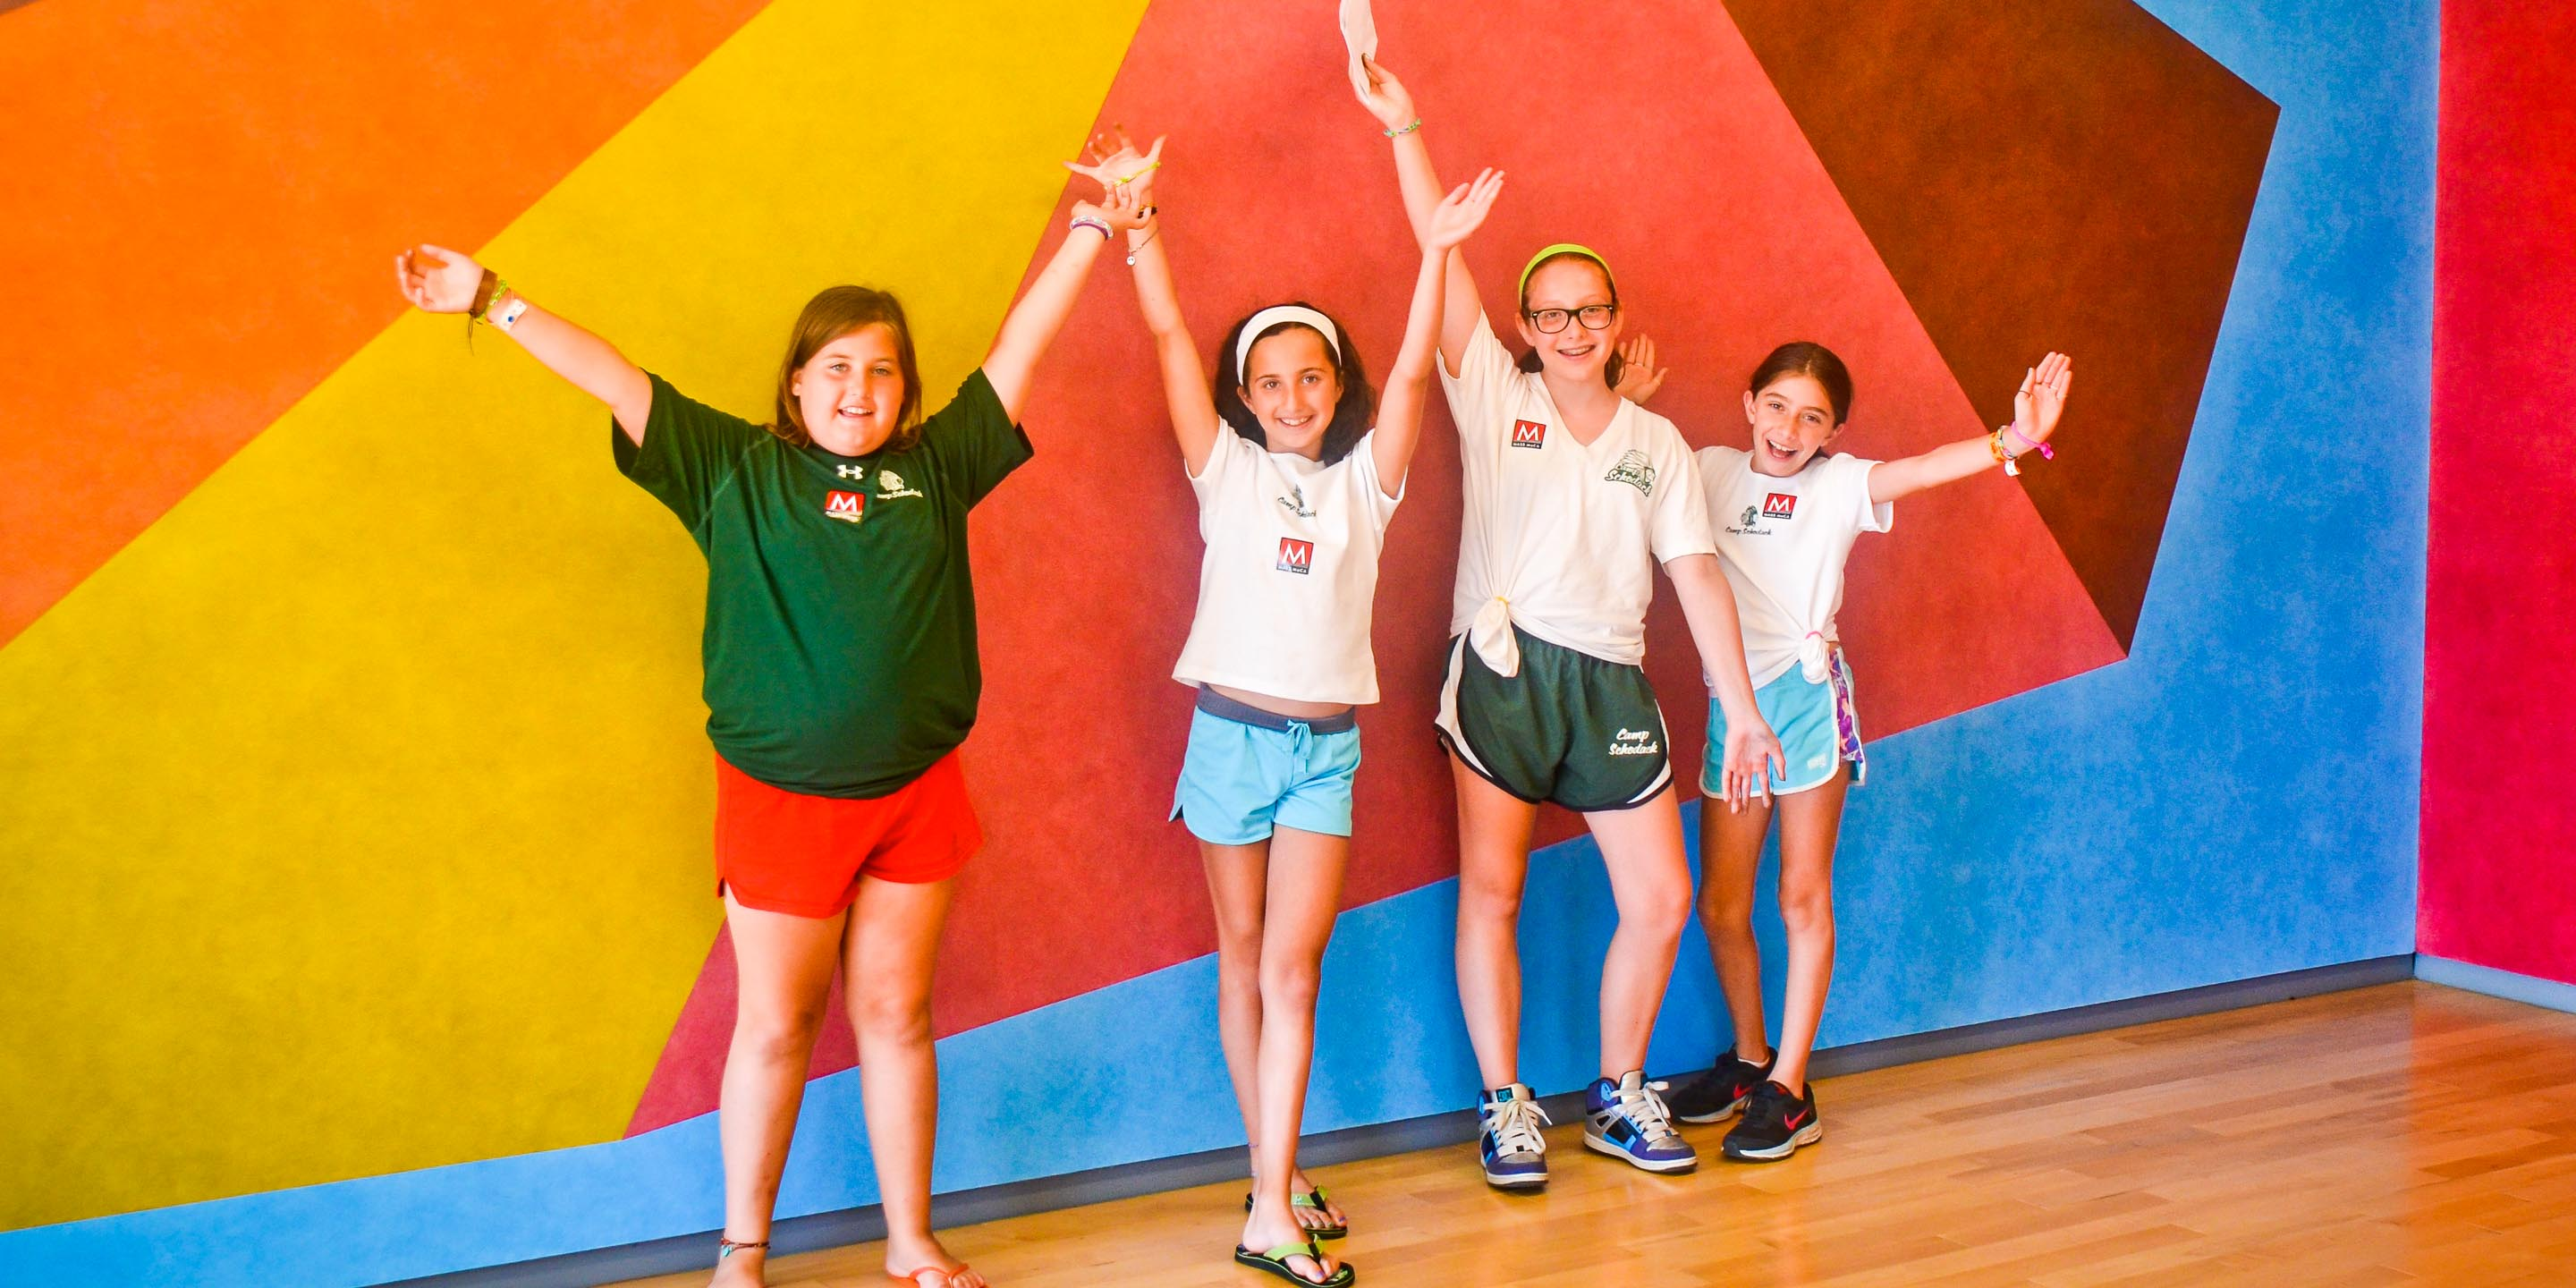 Girls pose in front of colorful wall during camp field trip